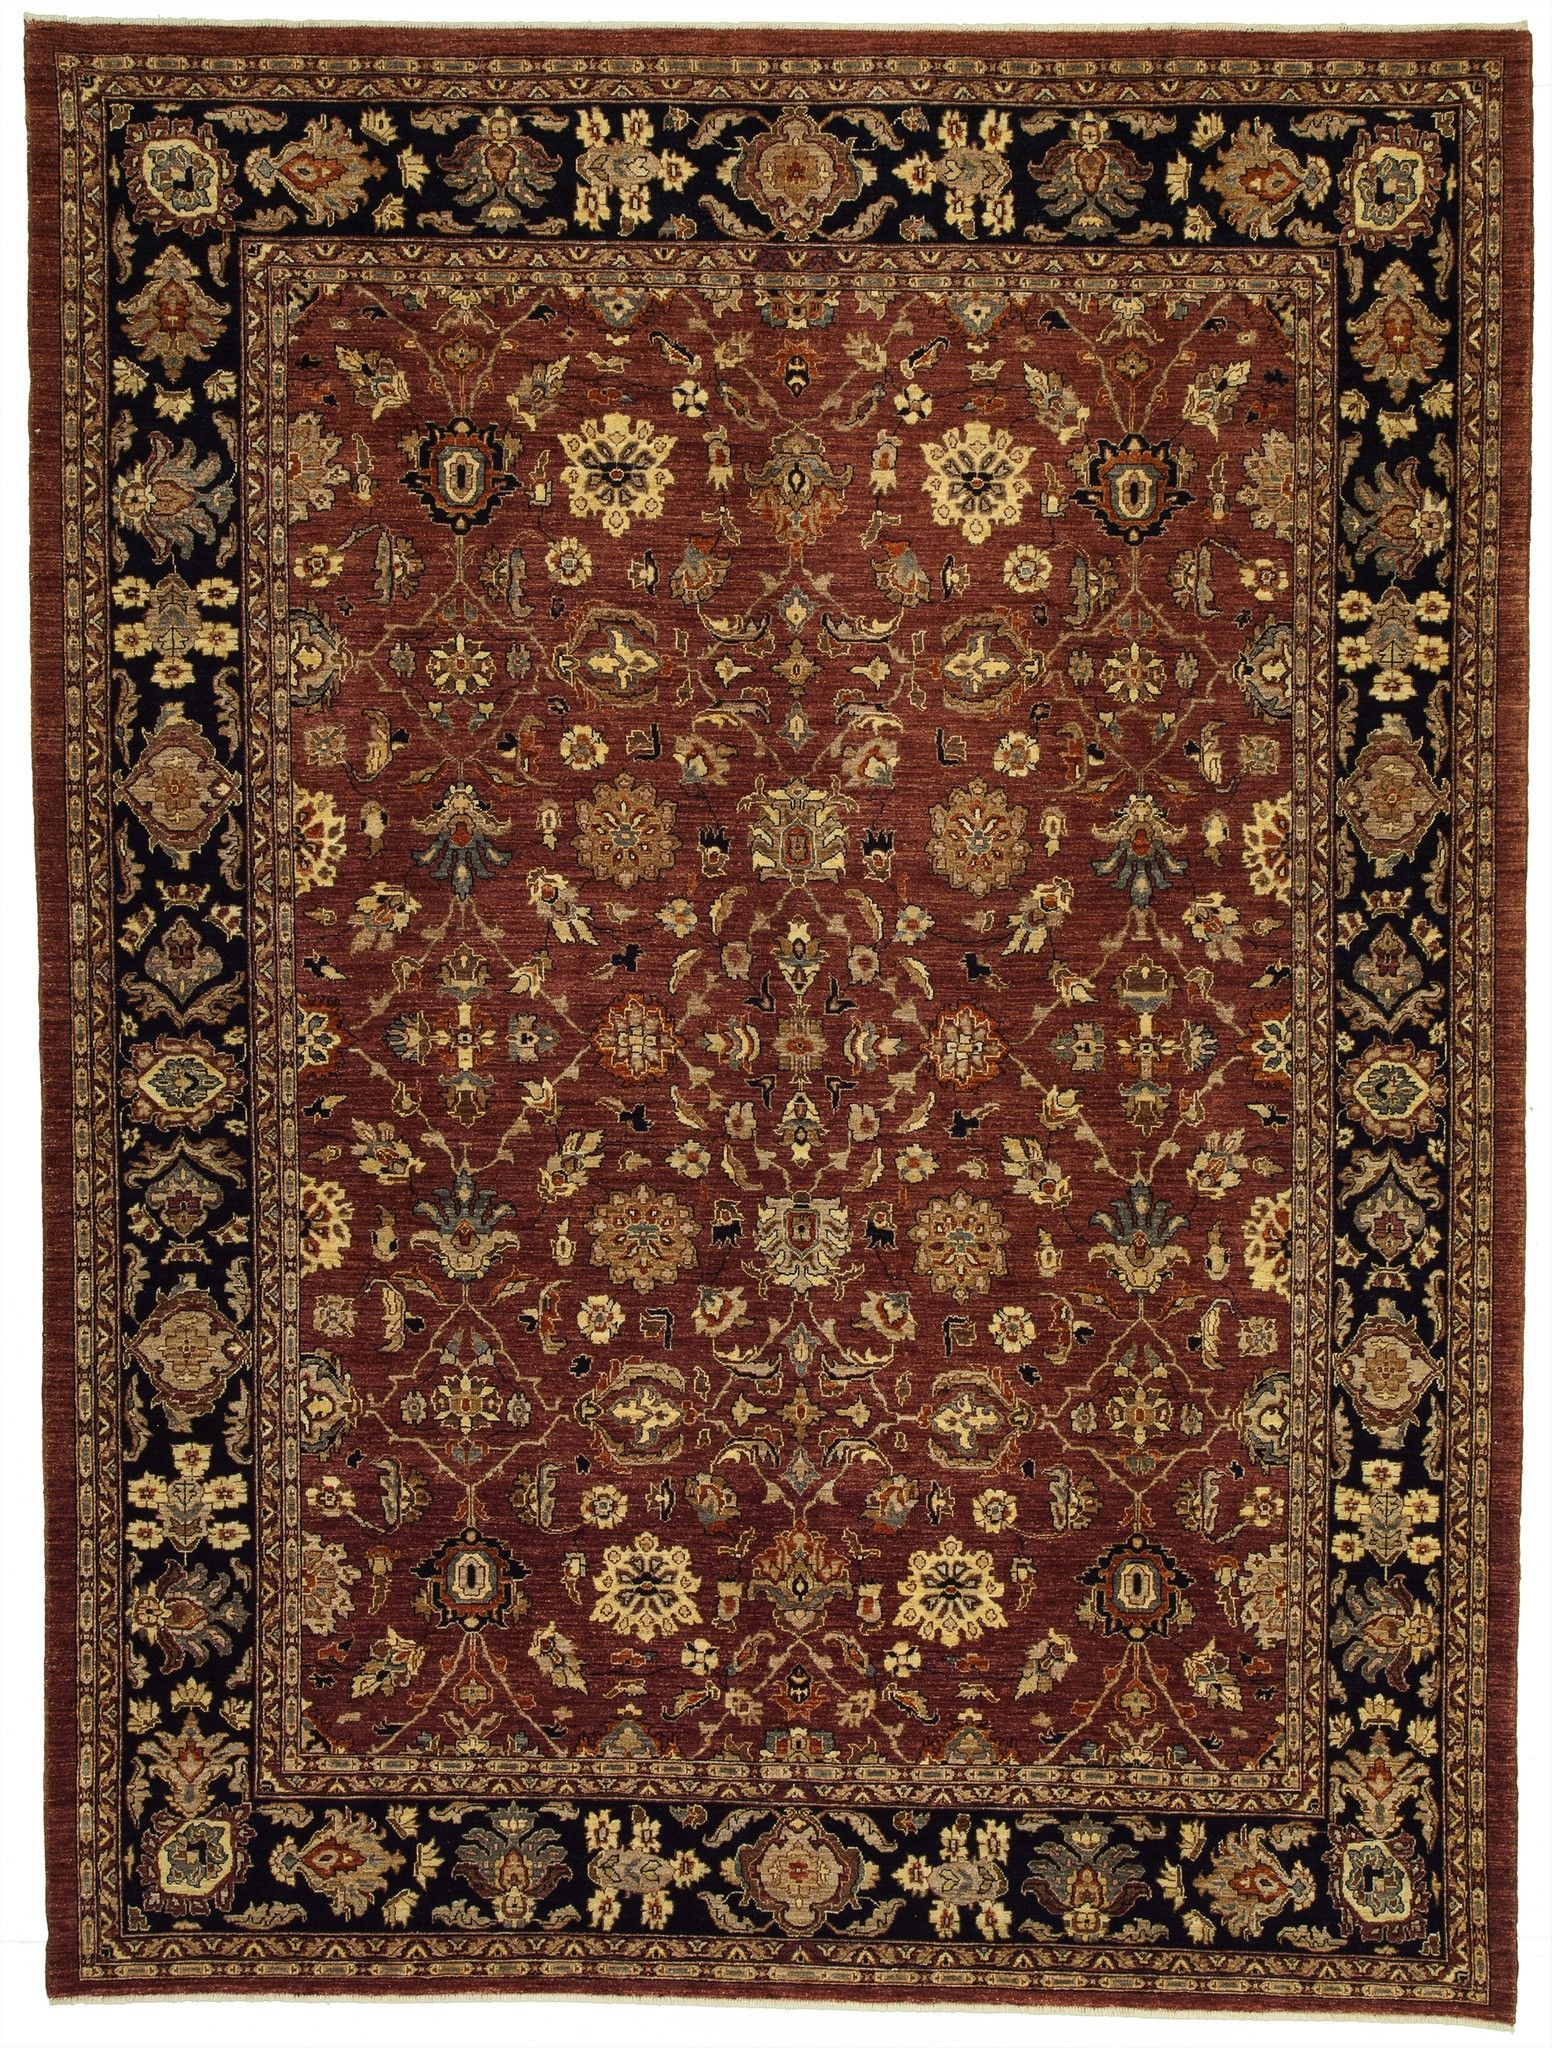 New Stan Hand Woven Antique Reproduction Of A 19th Century Persian Carpet 9 1